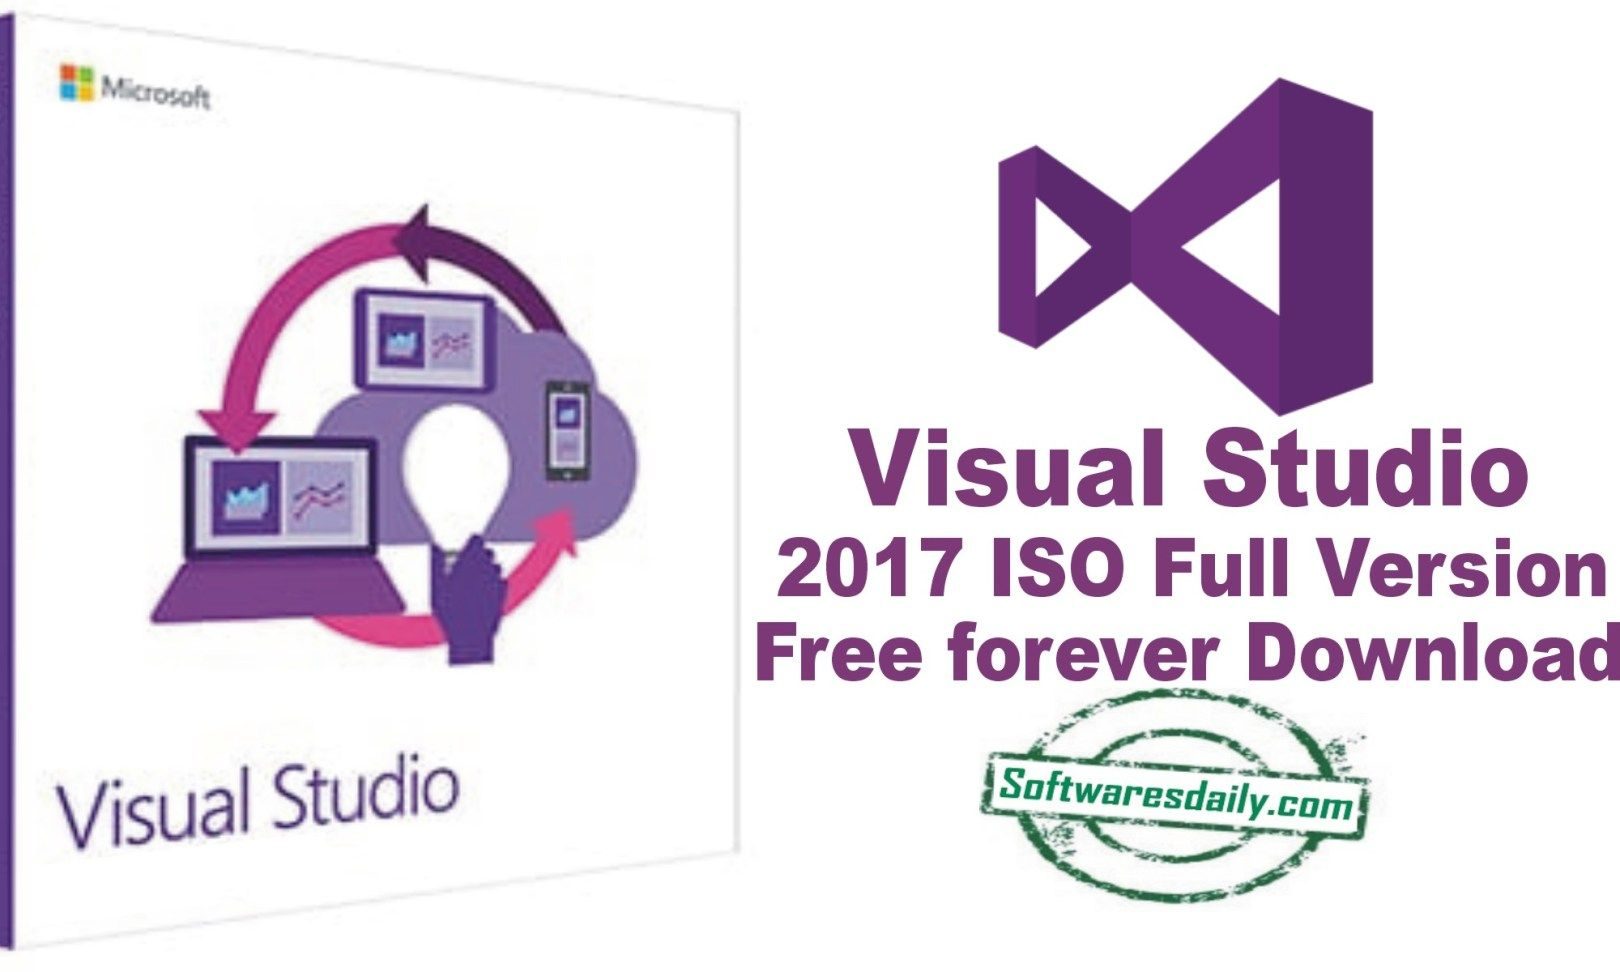 Download manycam enterprise 5 0 5 2 multilingual - Visual Studio 2017 Iso Crack Plus Activation Code Free Download Techmsoftware Pinterest Code Free And Software